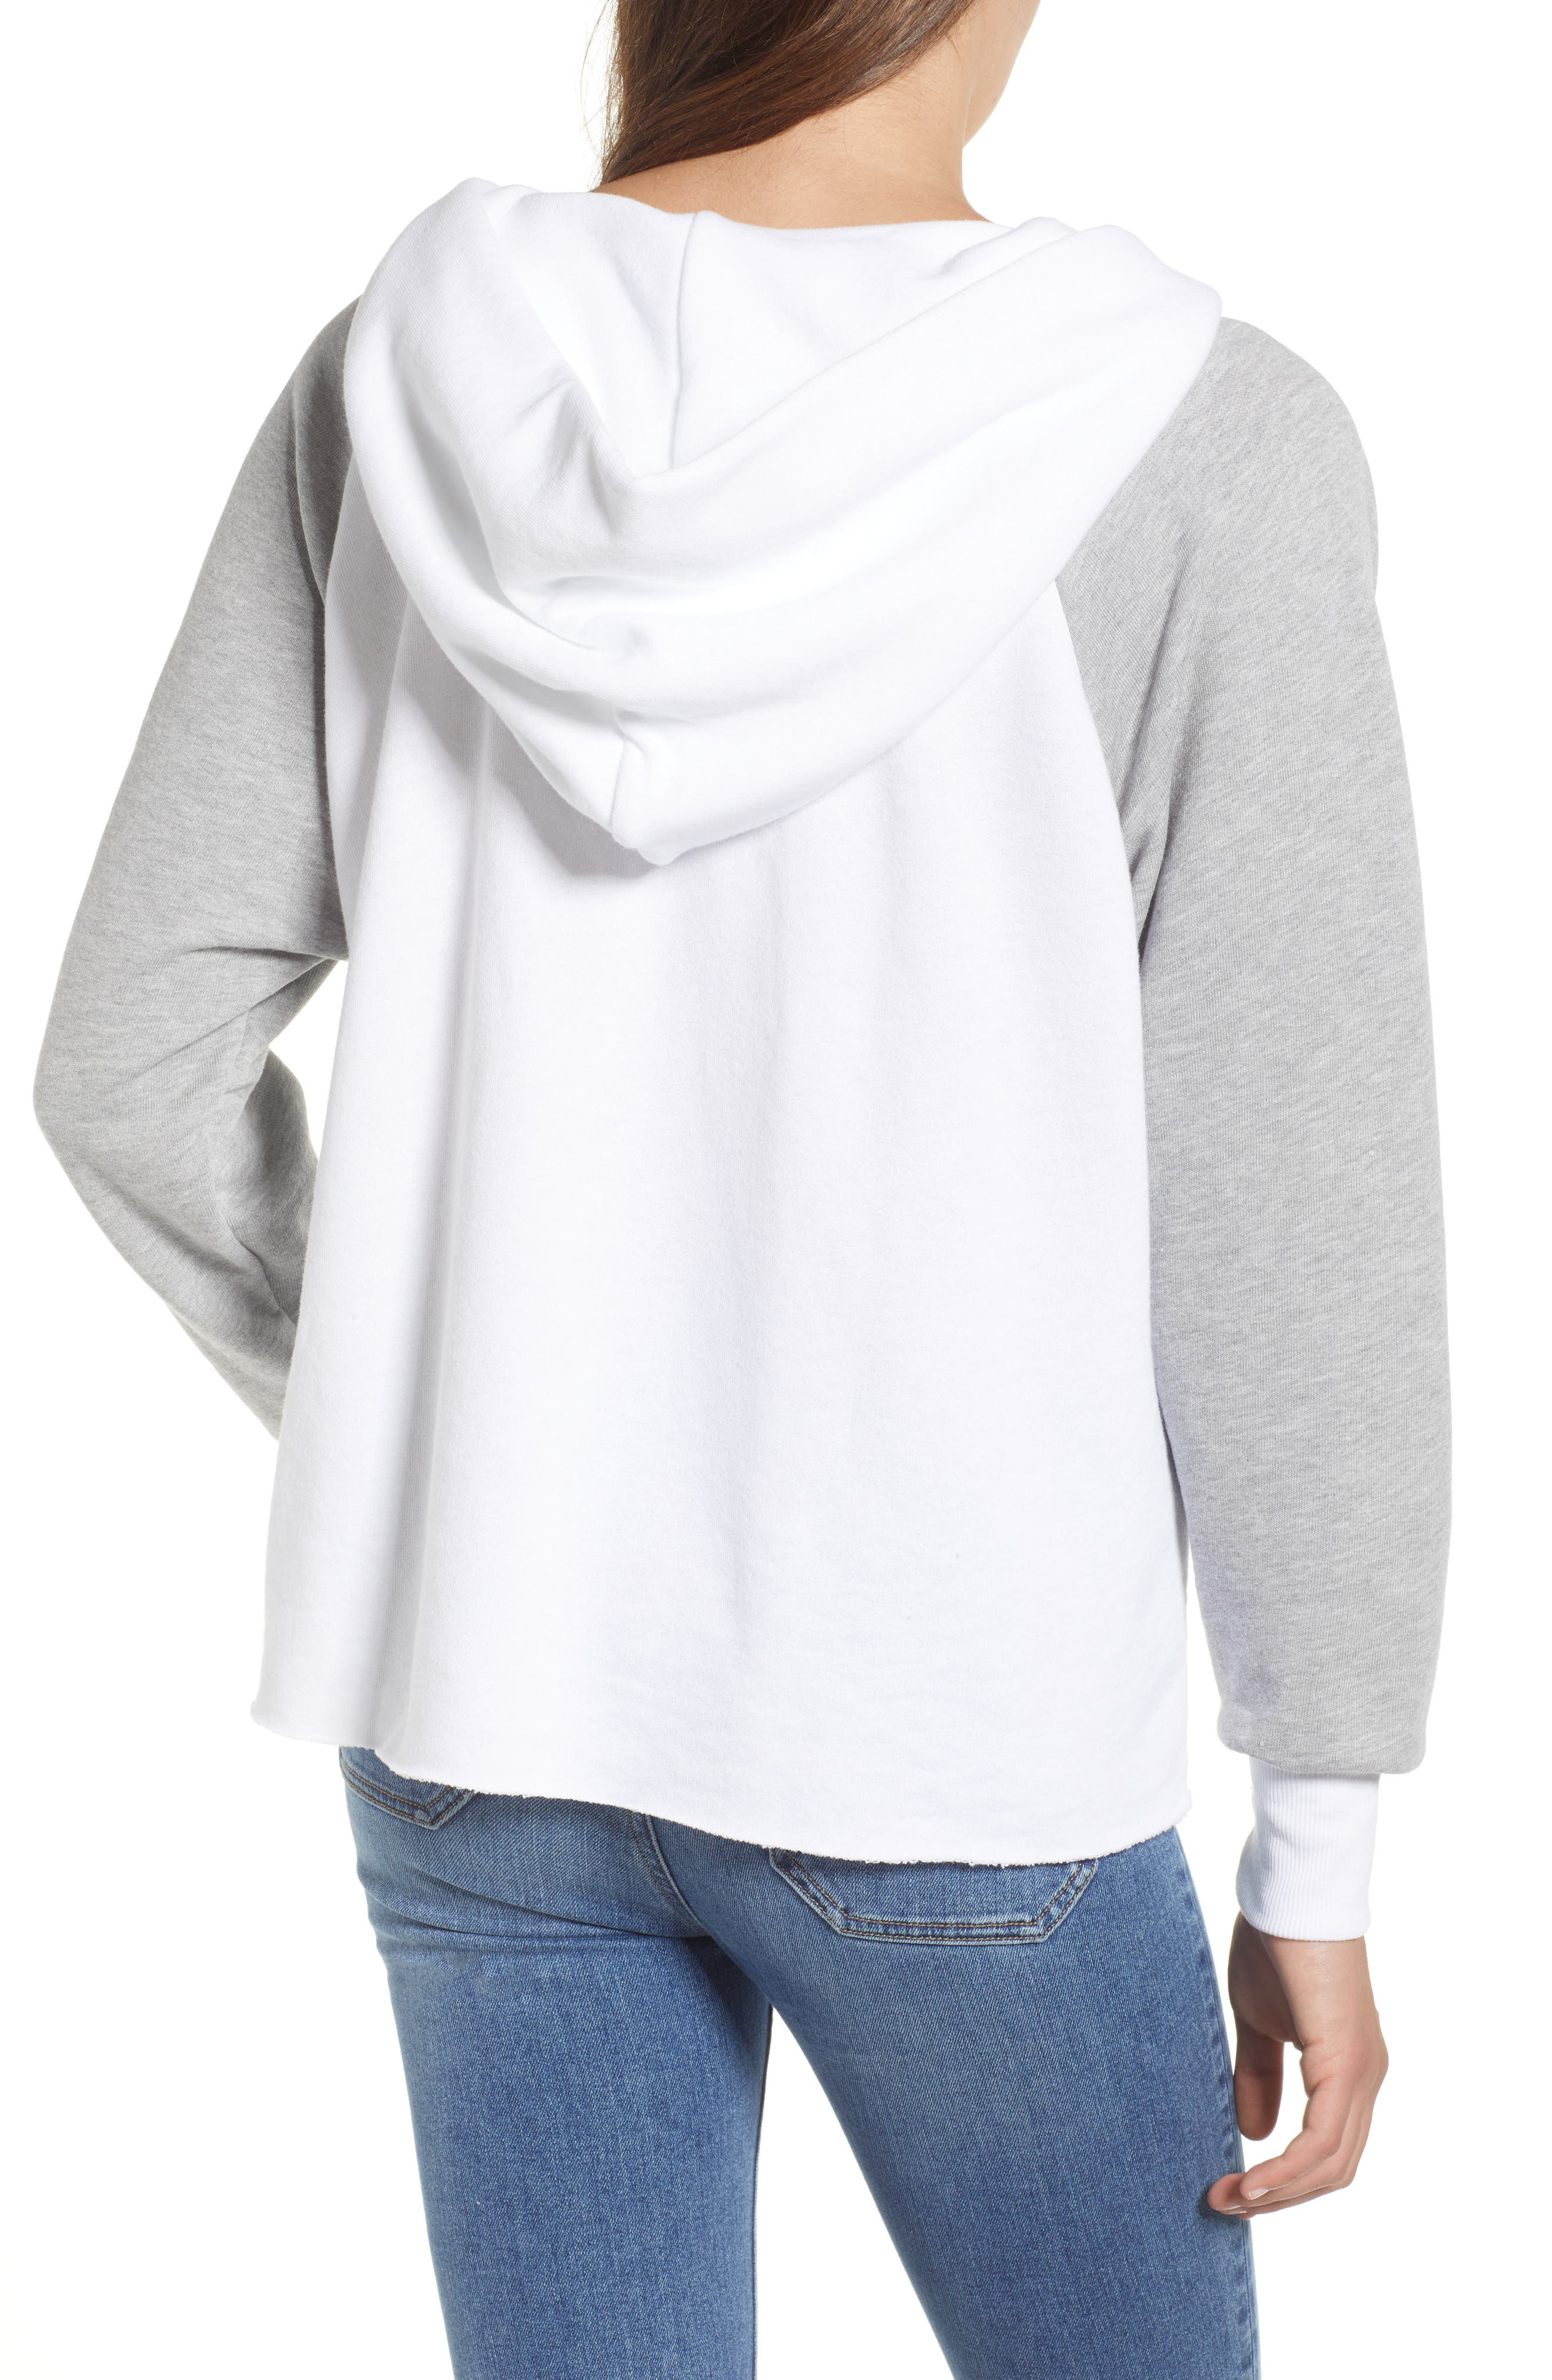 Contrast Hutton Hoodie,                             Alternate thumbnail 2, color,                             Clean White/ Heather